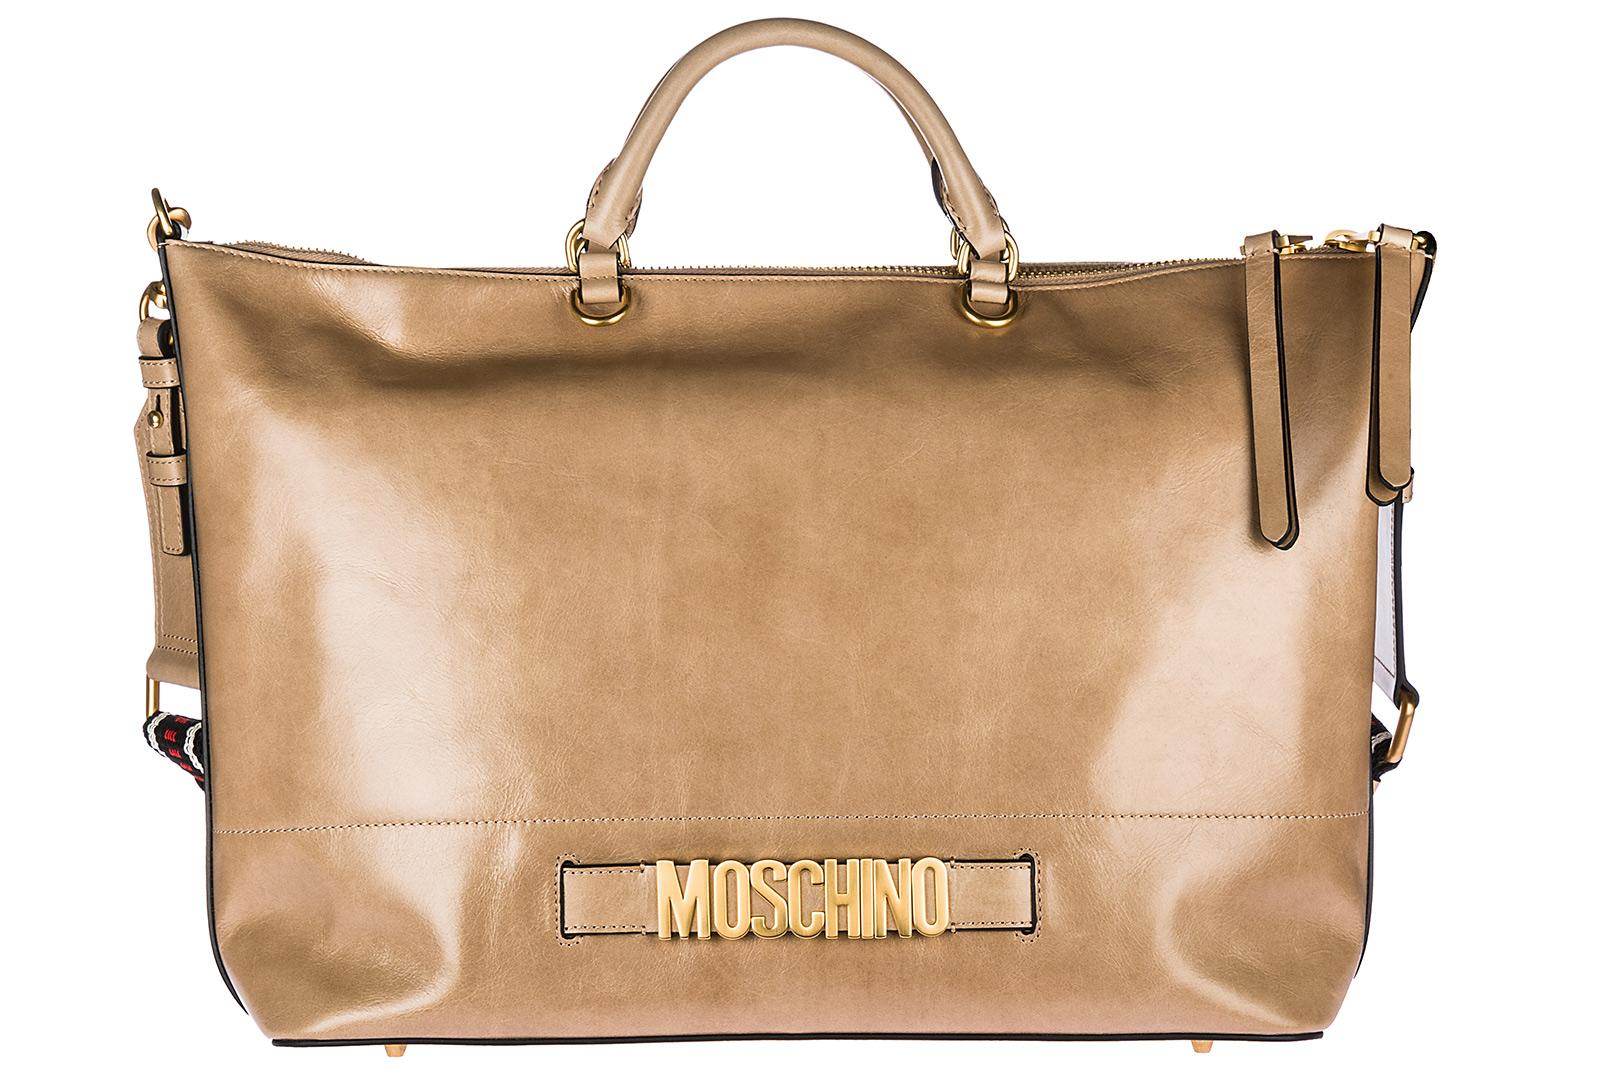 Boutique Moschino Women's Handbag Shopping Bag Purse In In Pelle In Beige